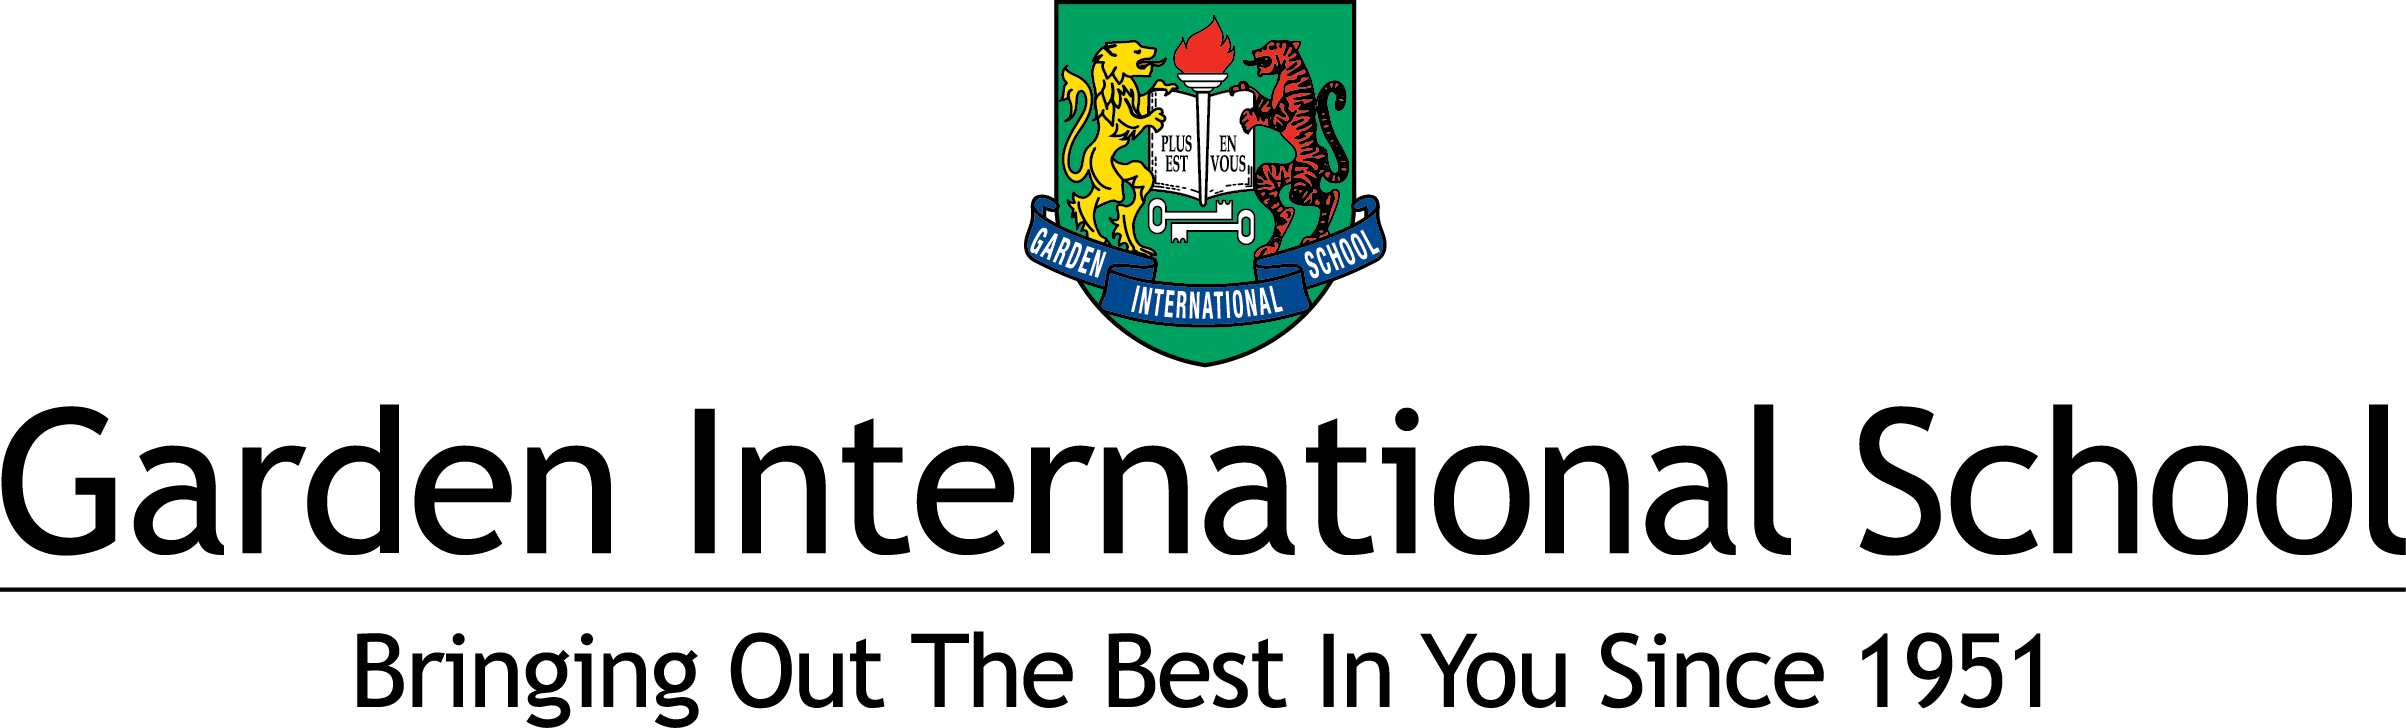 Garden International School